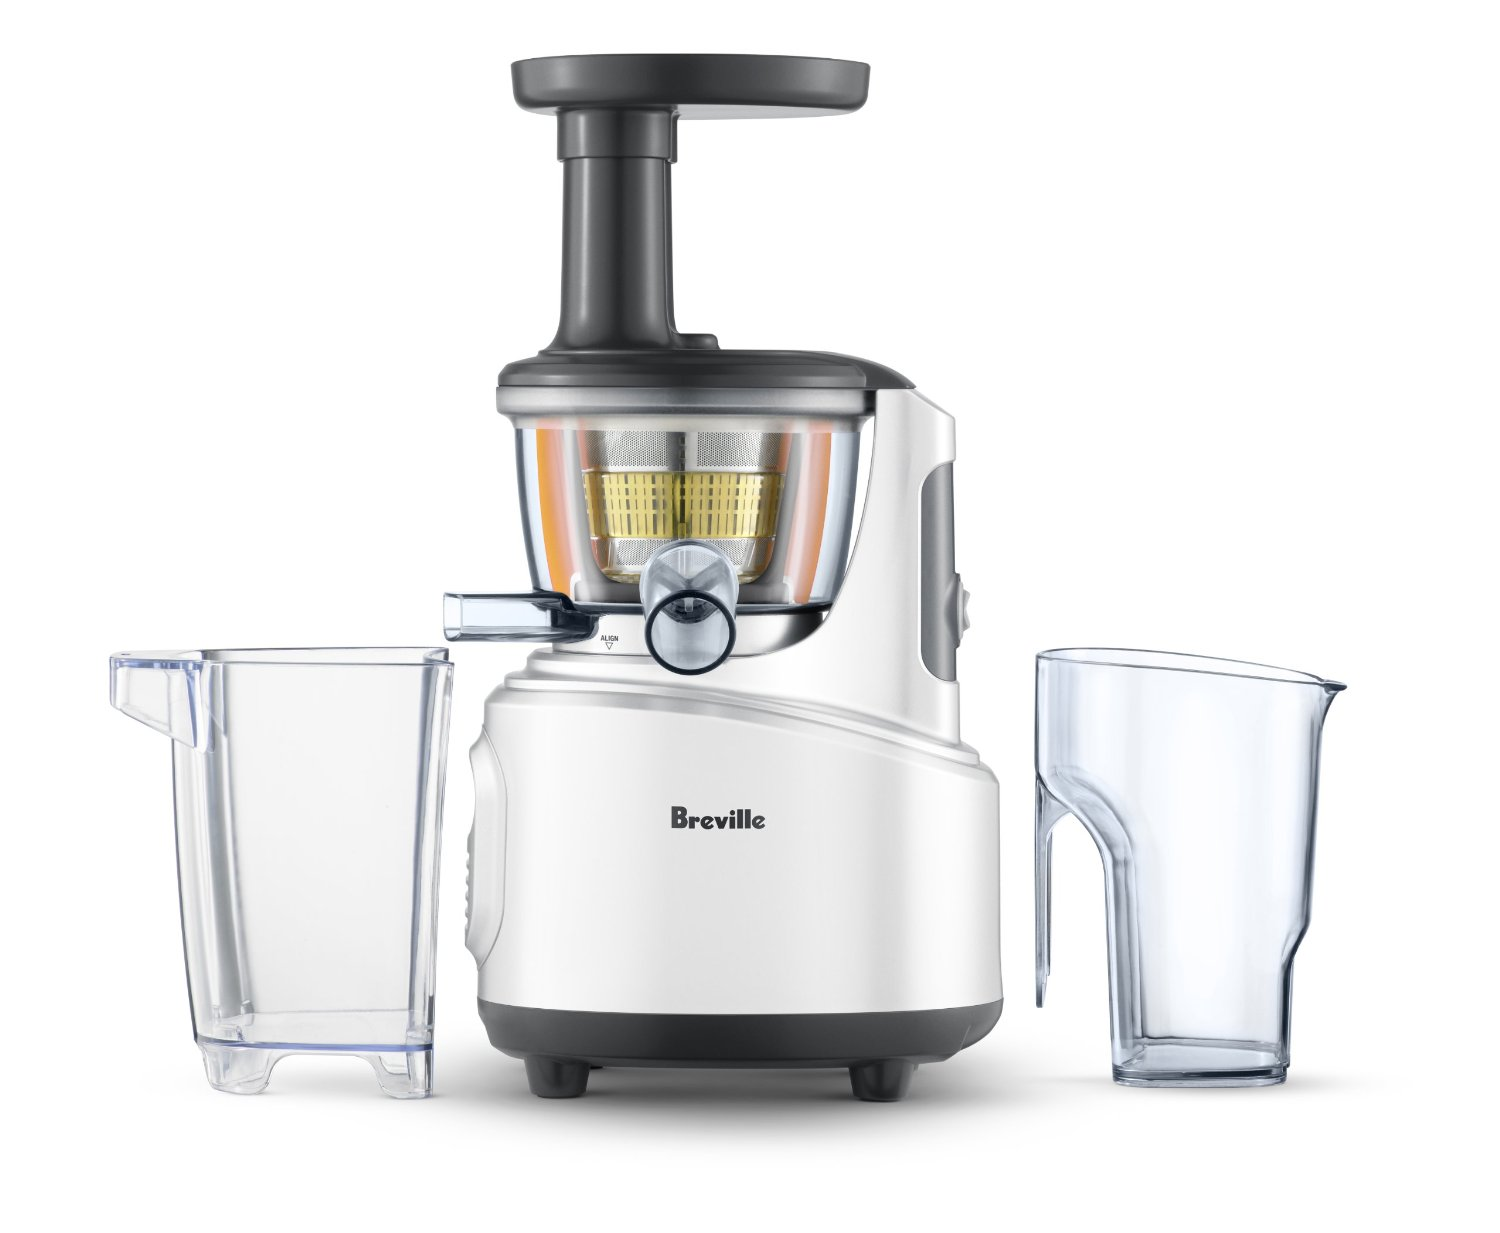 Best Rated Masticating Juicer : The Best Juice Machine Reviews of Masticating and Centrifugal Juicers